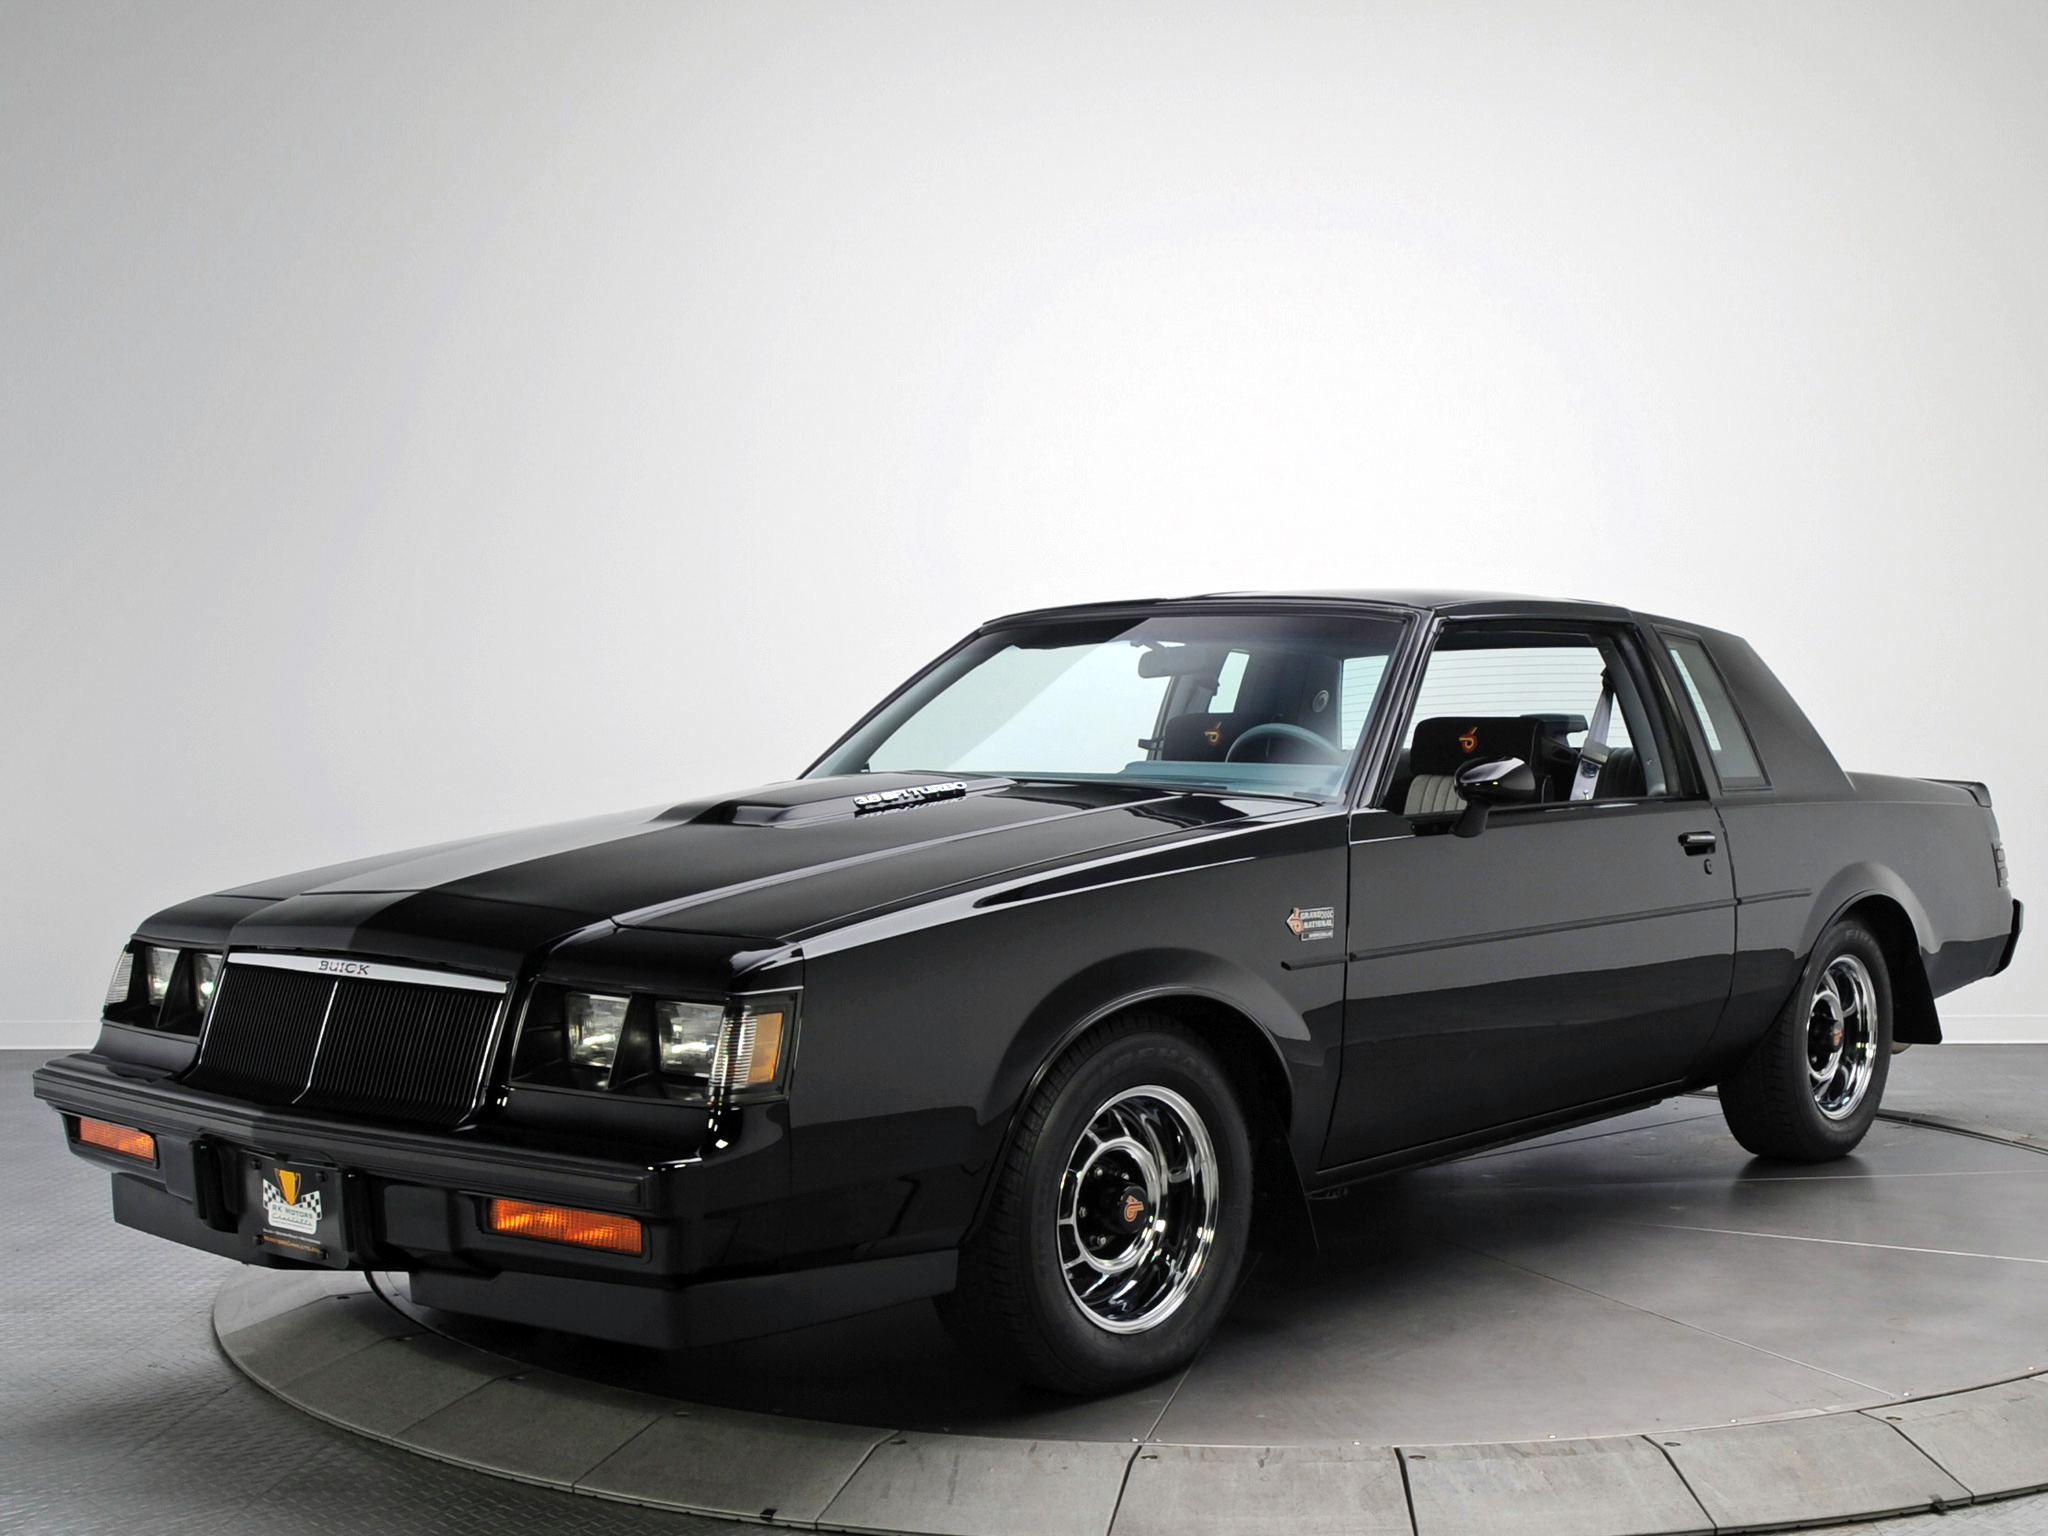 1987 buick regal grand national muscle t wallpaper 2048x1536 164691 wallpaperup. Black Bedroom Furniture Sets. Home Design Ideas